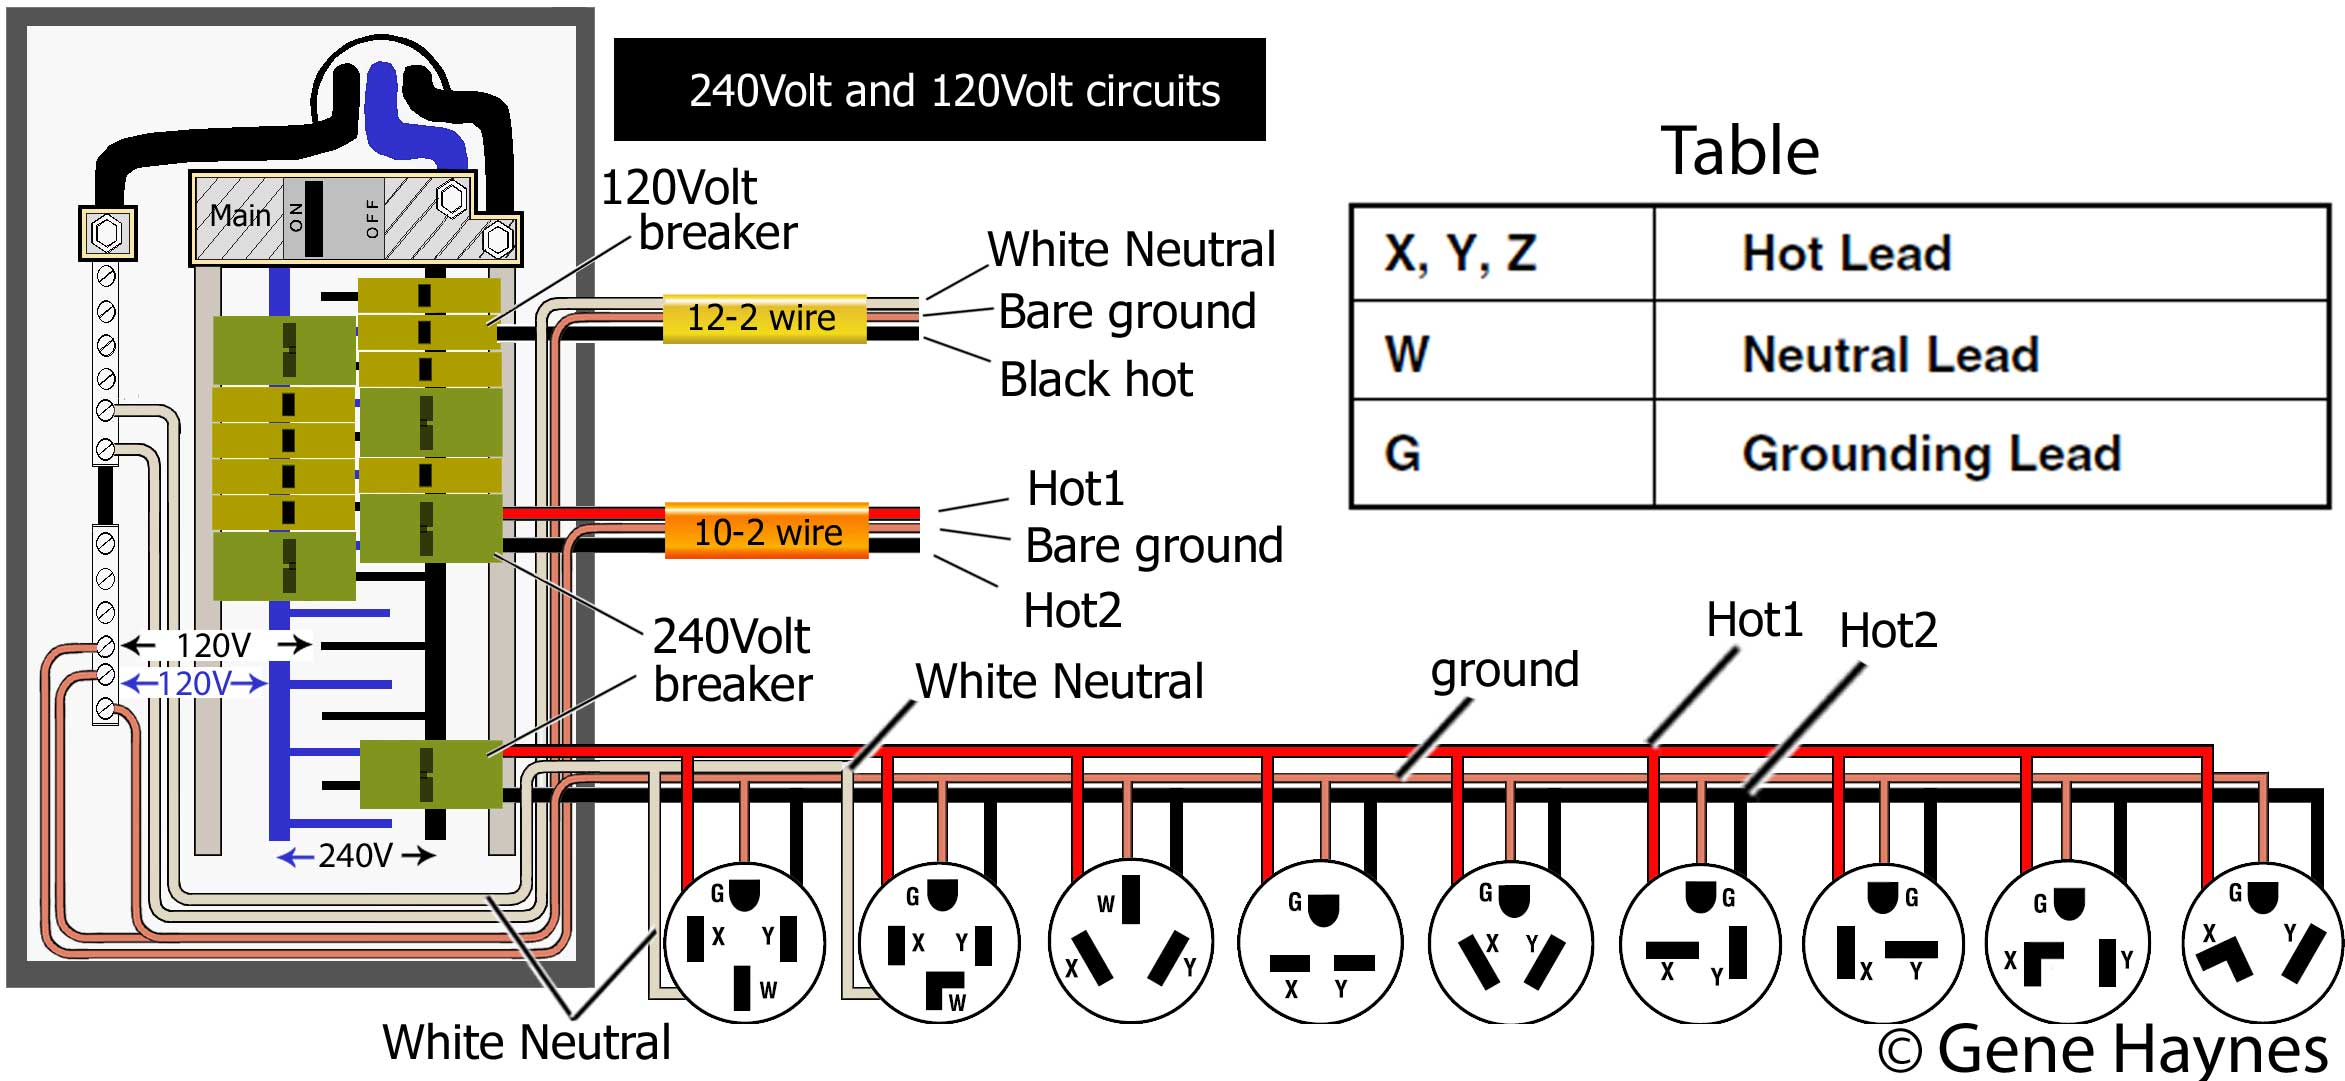 240v 1 phase wiring diagram wiring diagrams schematics how to wire 240 volt outlets and plugs 240v 1 phase wiring diagram ac single phase swarovskicordoba Gallery